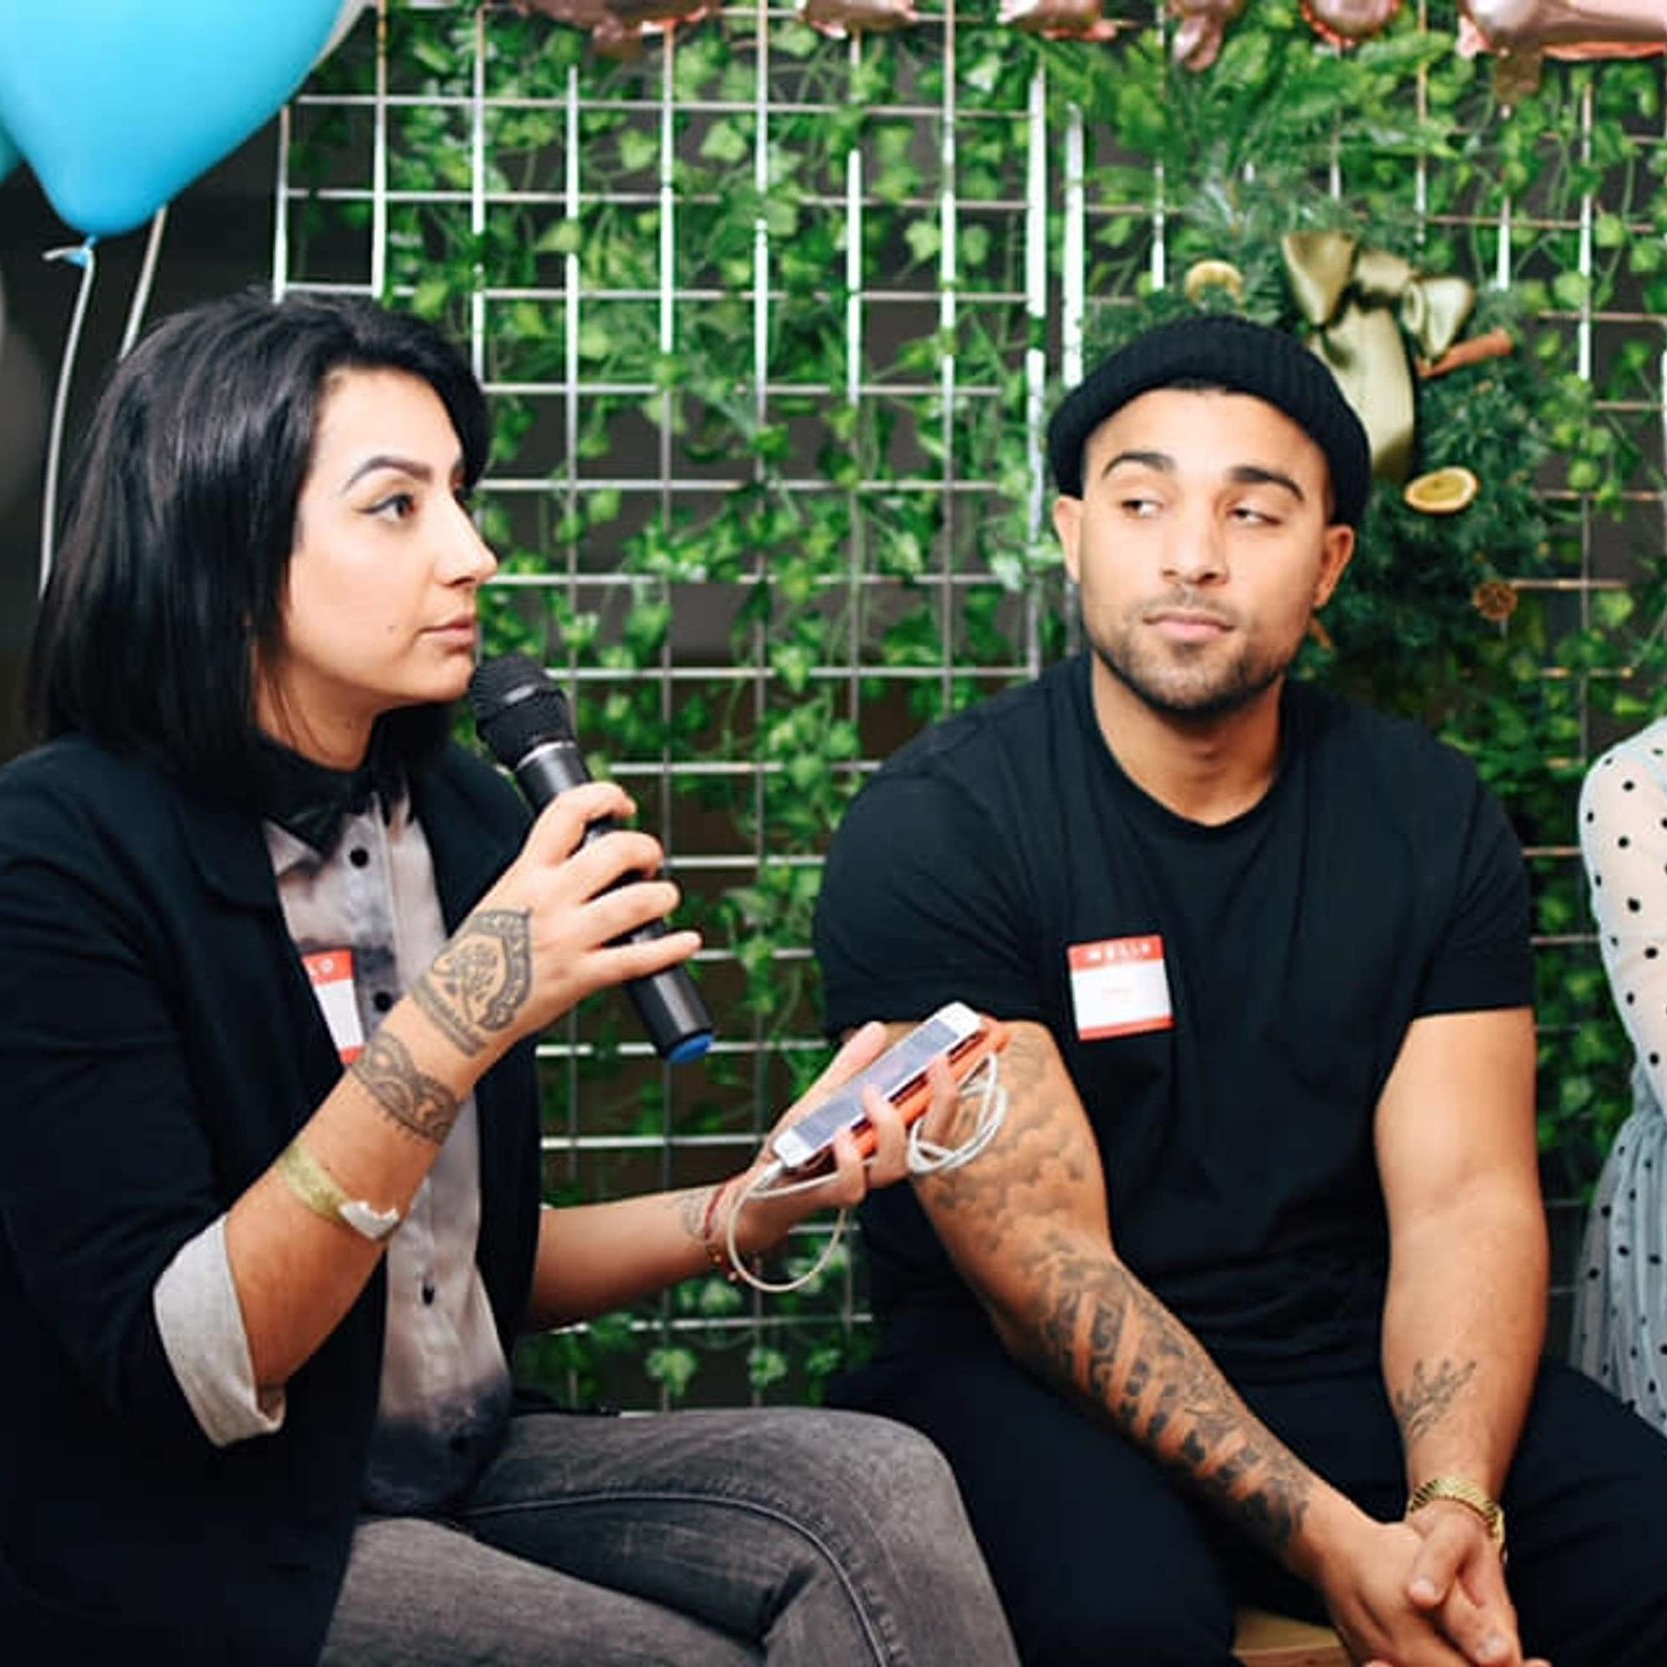 Unread Magazine 'Pockets of Inspiration' - I hosted Unread magazine's panel talk for their event 'Pockets of Inspiration', talking to Jay Richards from DivInc, Lara & Tiffany from Brush & Bubbles and writer Daniel Ingram-Brown about starting new business for young creatives.